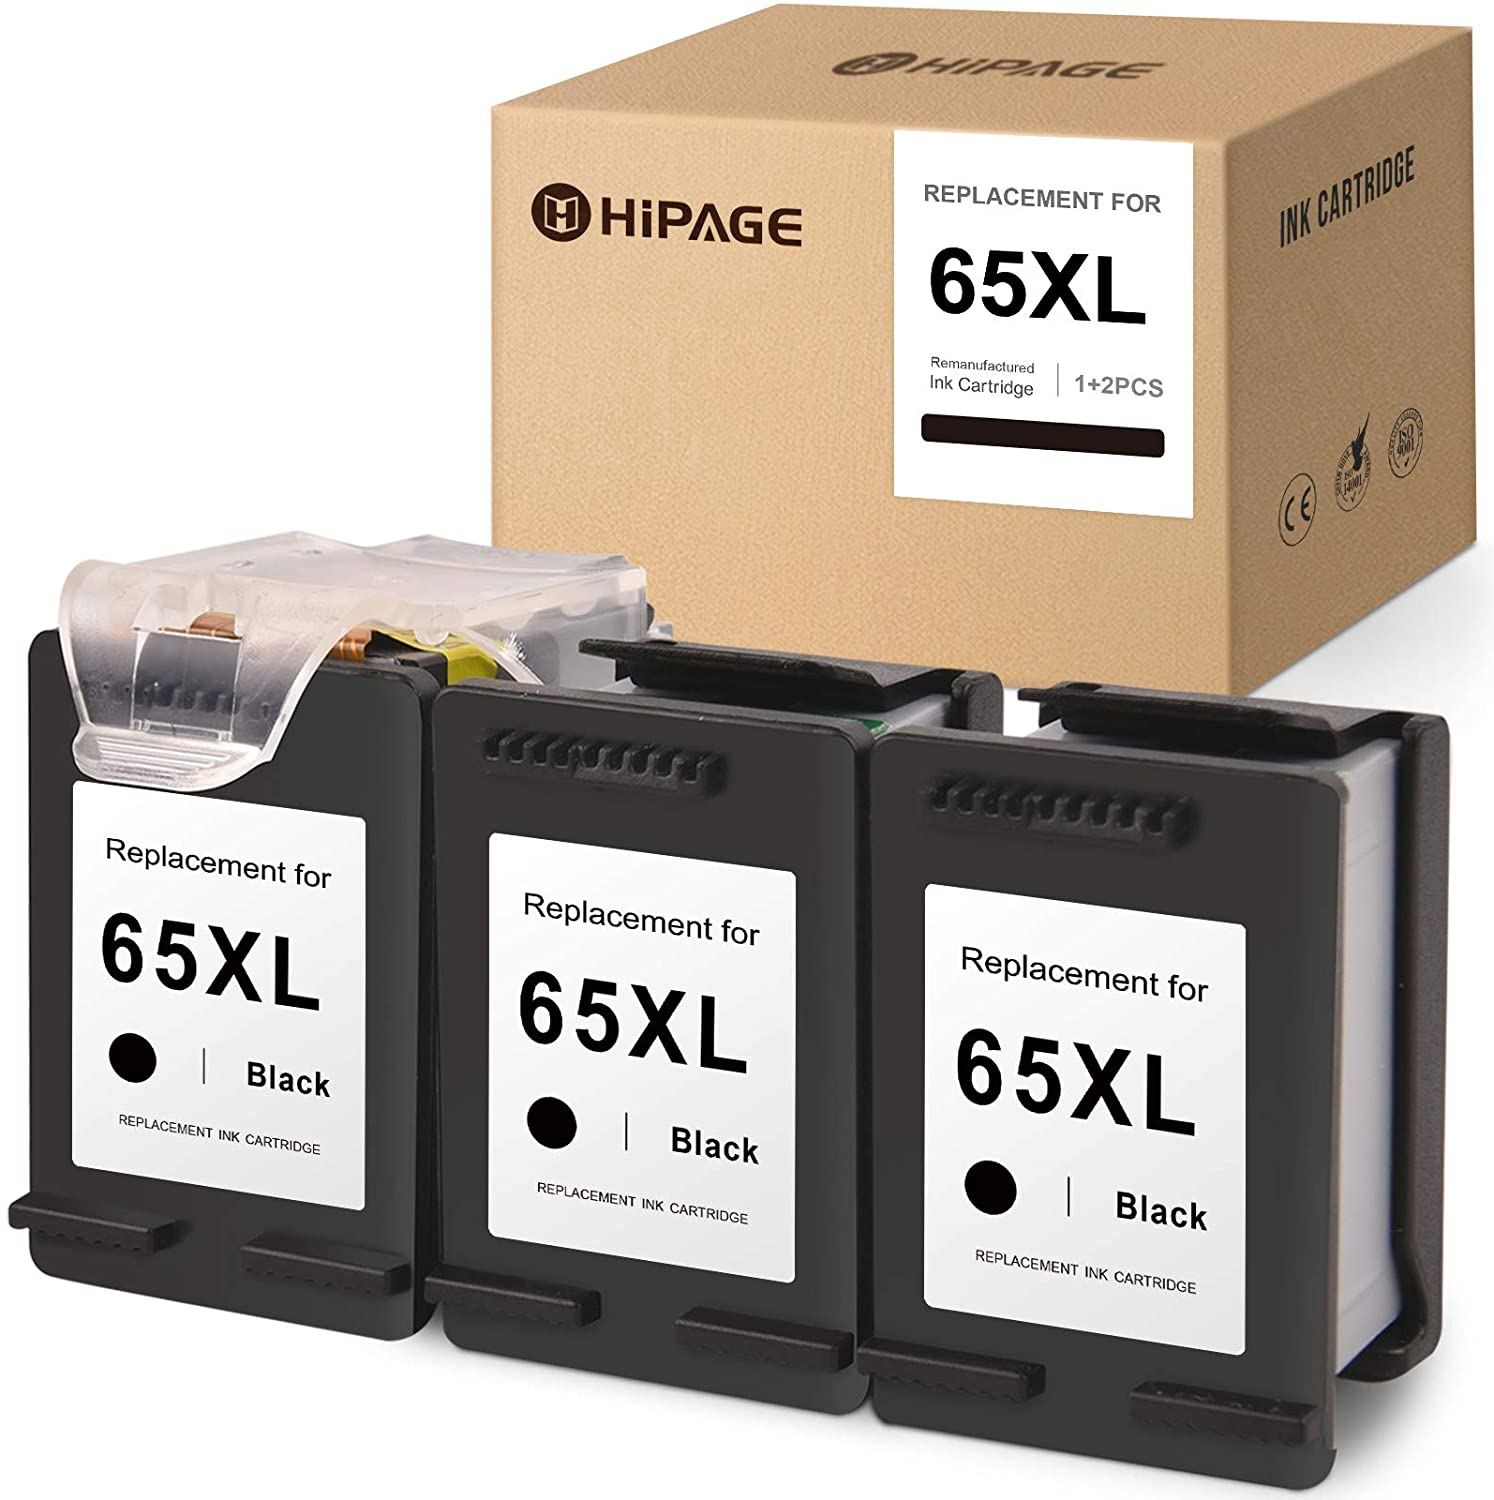 HIPAGE Remanufactured Ink Cartridge Replacement for HP 65XL 65 XL Recharge Design for HP DeskJet 3752 2622 3755 2652 2655 2636 3720 3758 3730 2621 3721 3732 Envy 5055 5052 5012 (Black, 3-Pack)